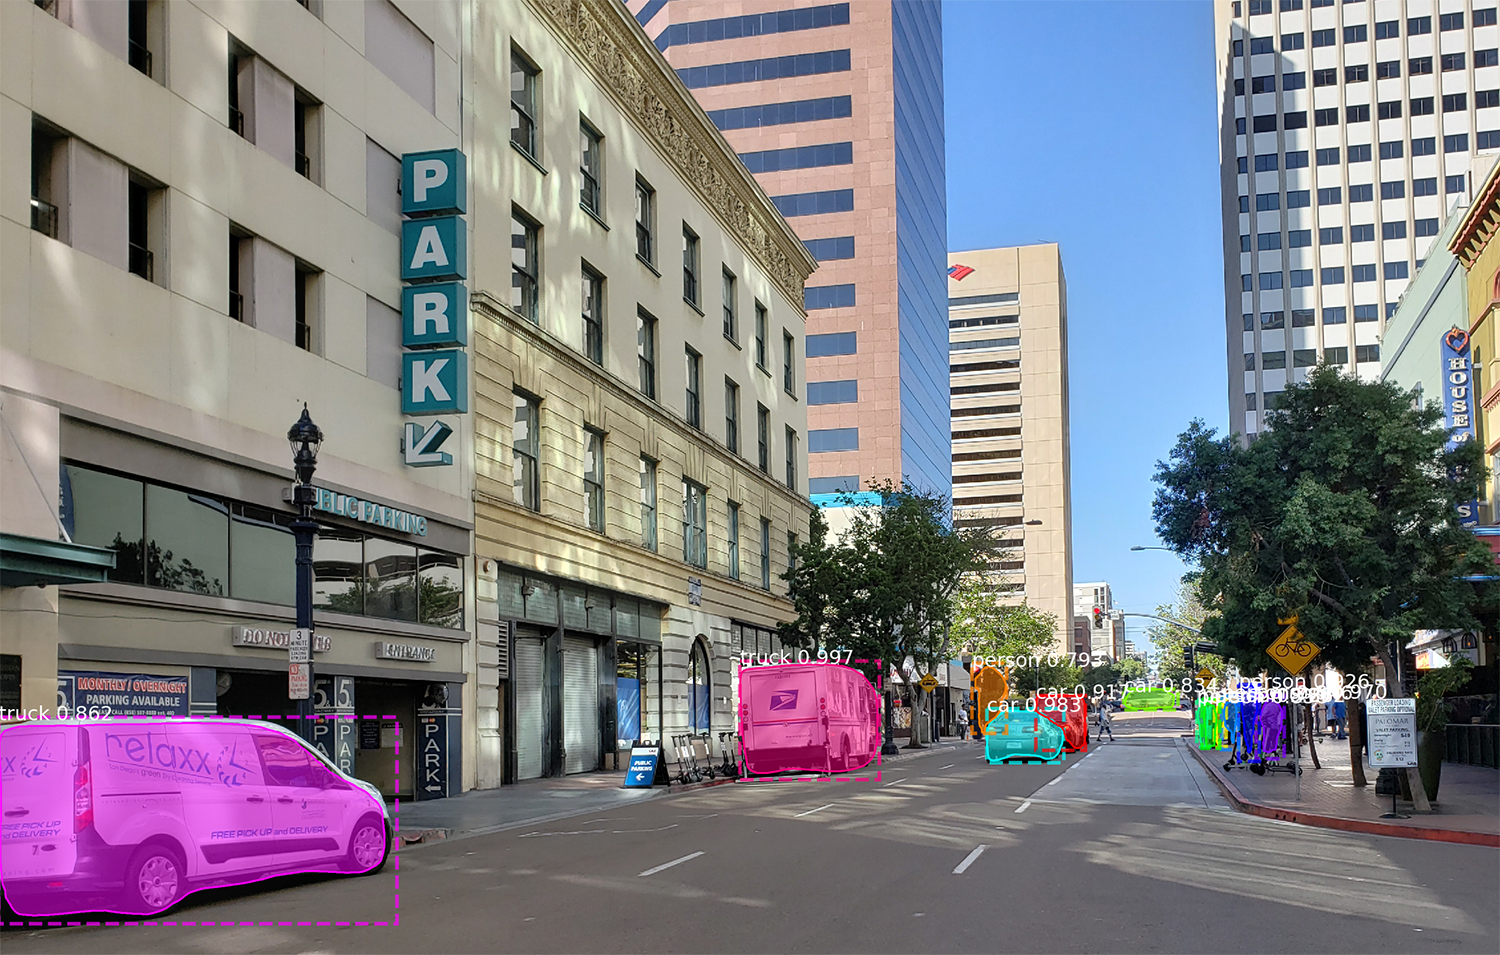 Snagging Parking Spaces with Mask R-CNN and Python - Adam